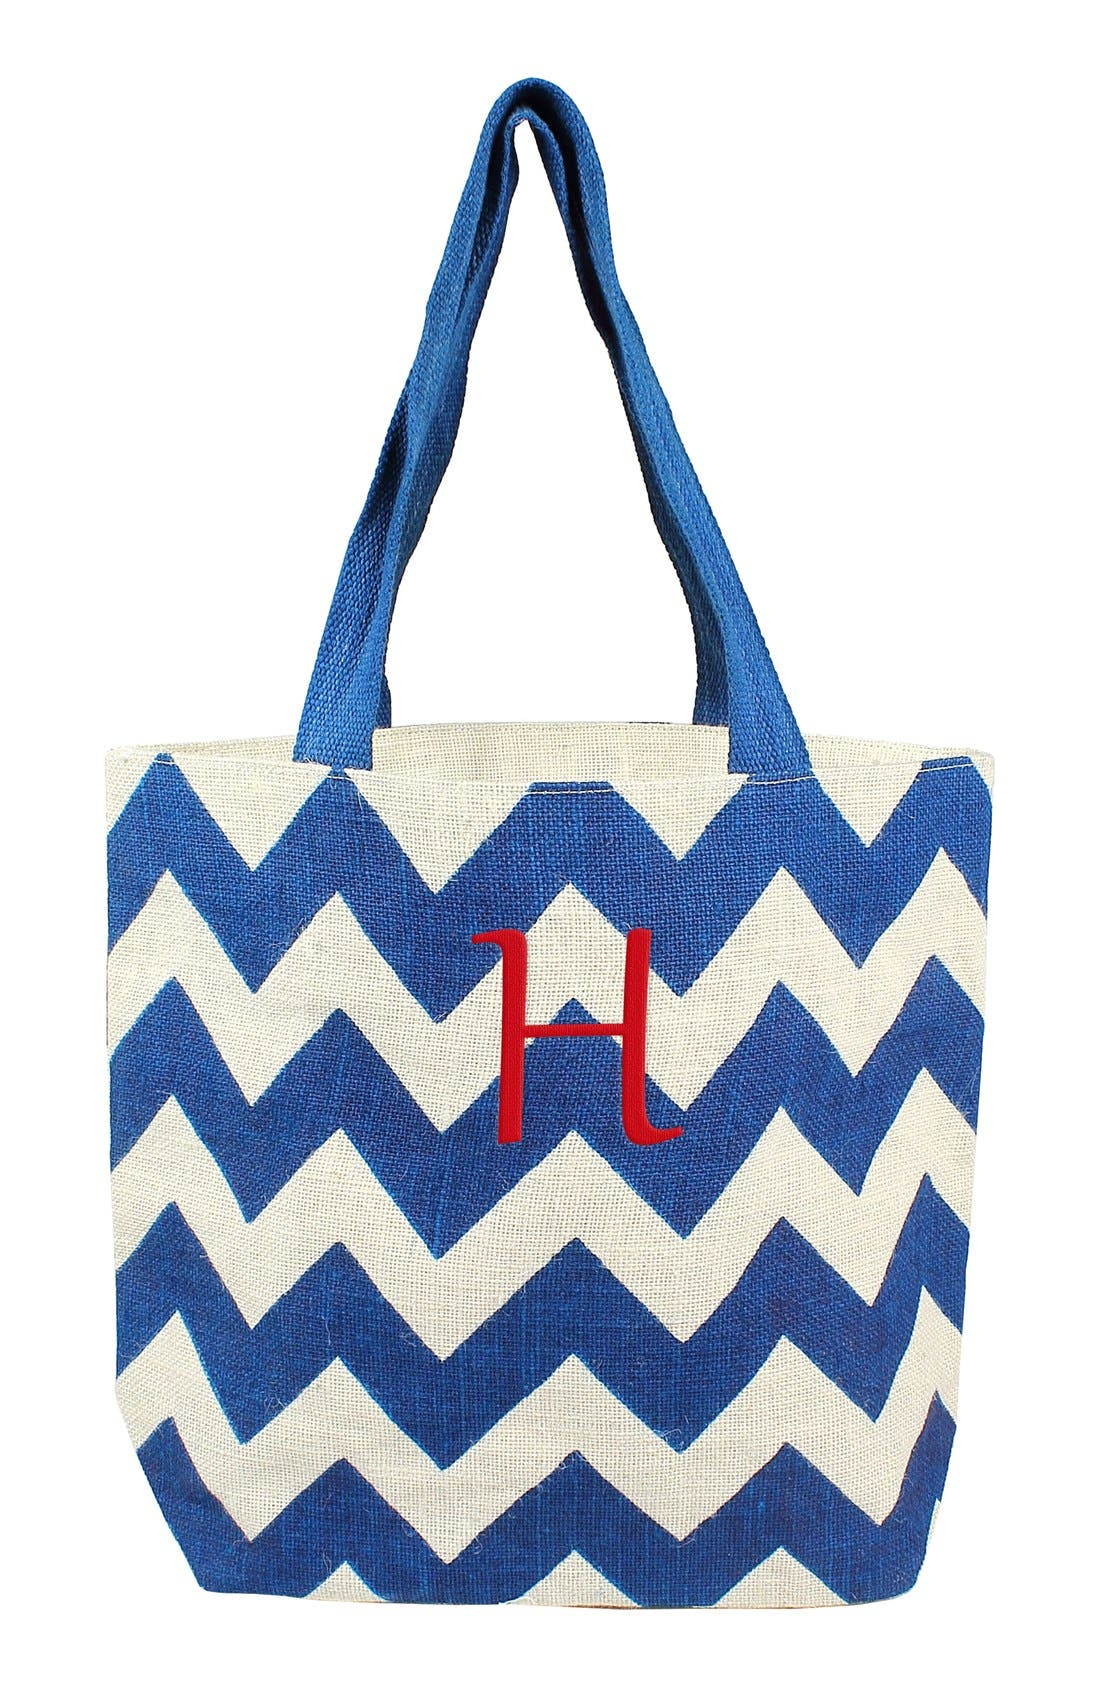 Alternate Image 1 Selected - Cathy's Concepts Monogram Chevron Print Jute Tote